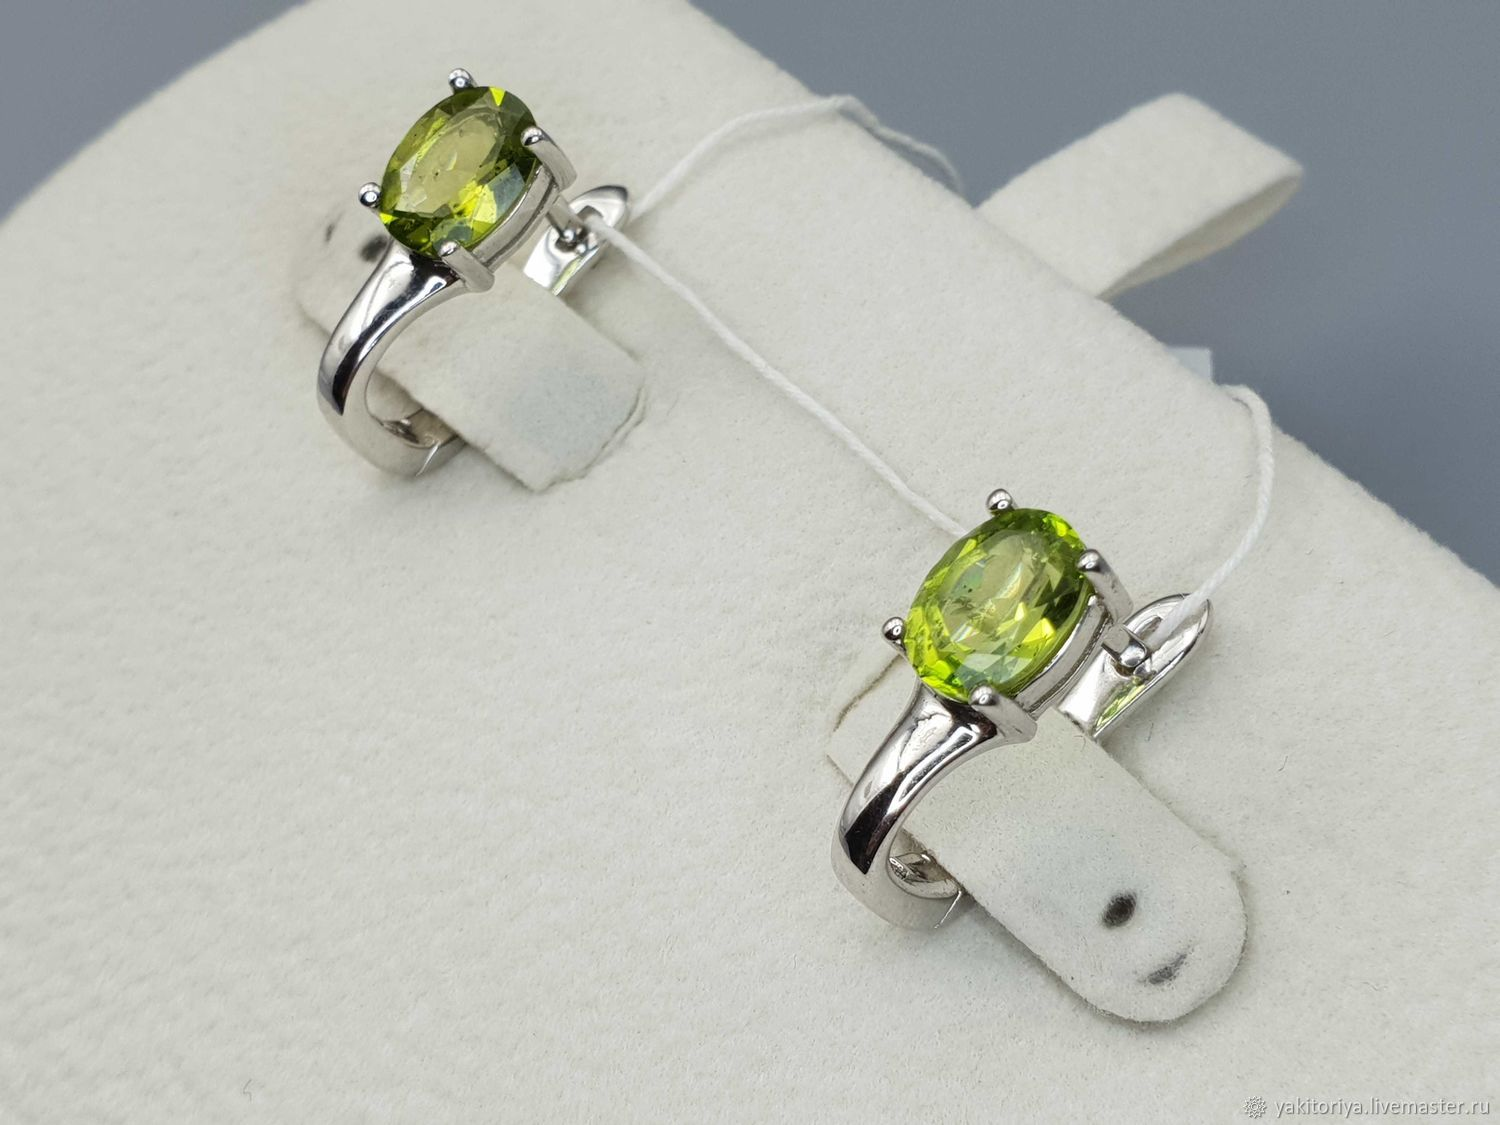 Silver earrings with chrysolite 8h6 mm, Earrings, Moscow,  Фото №1